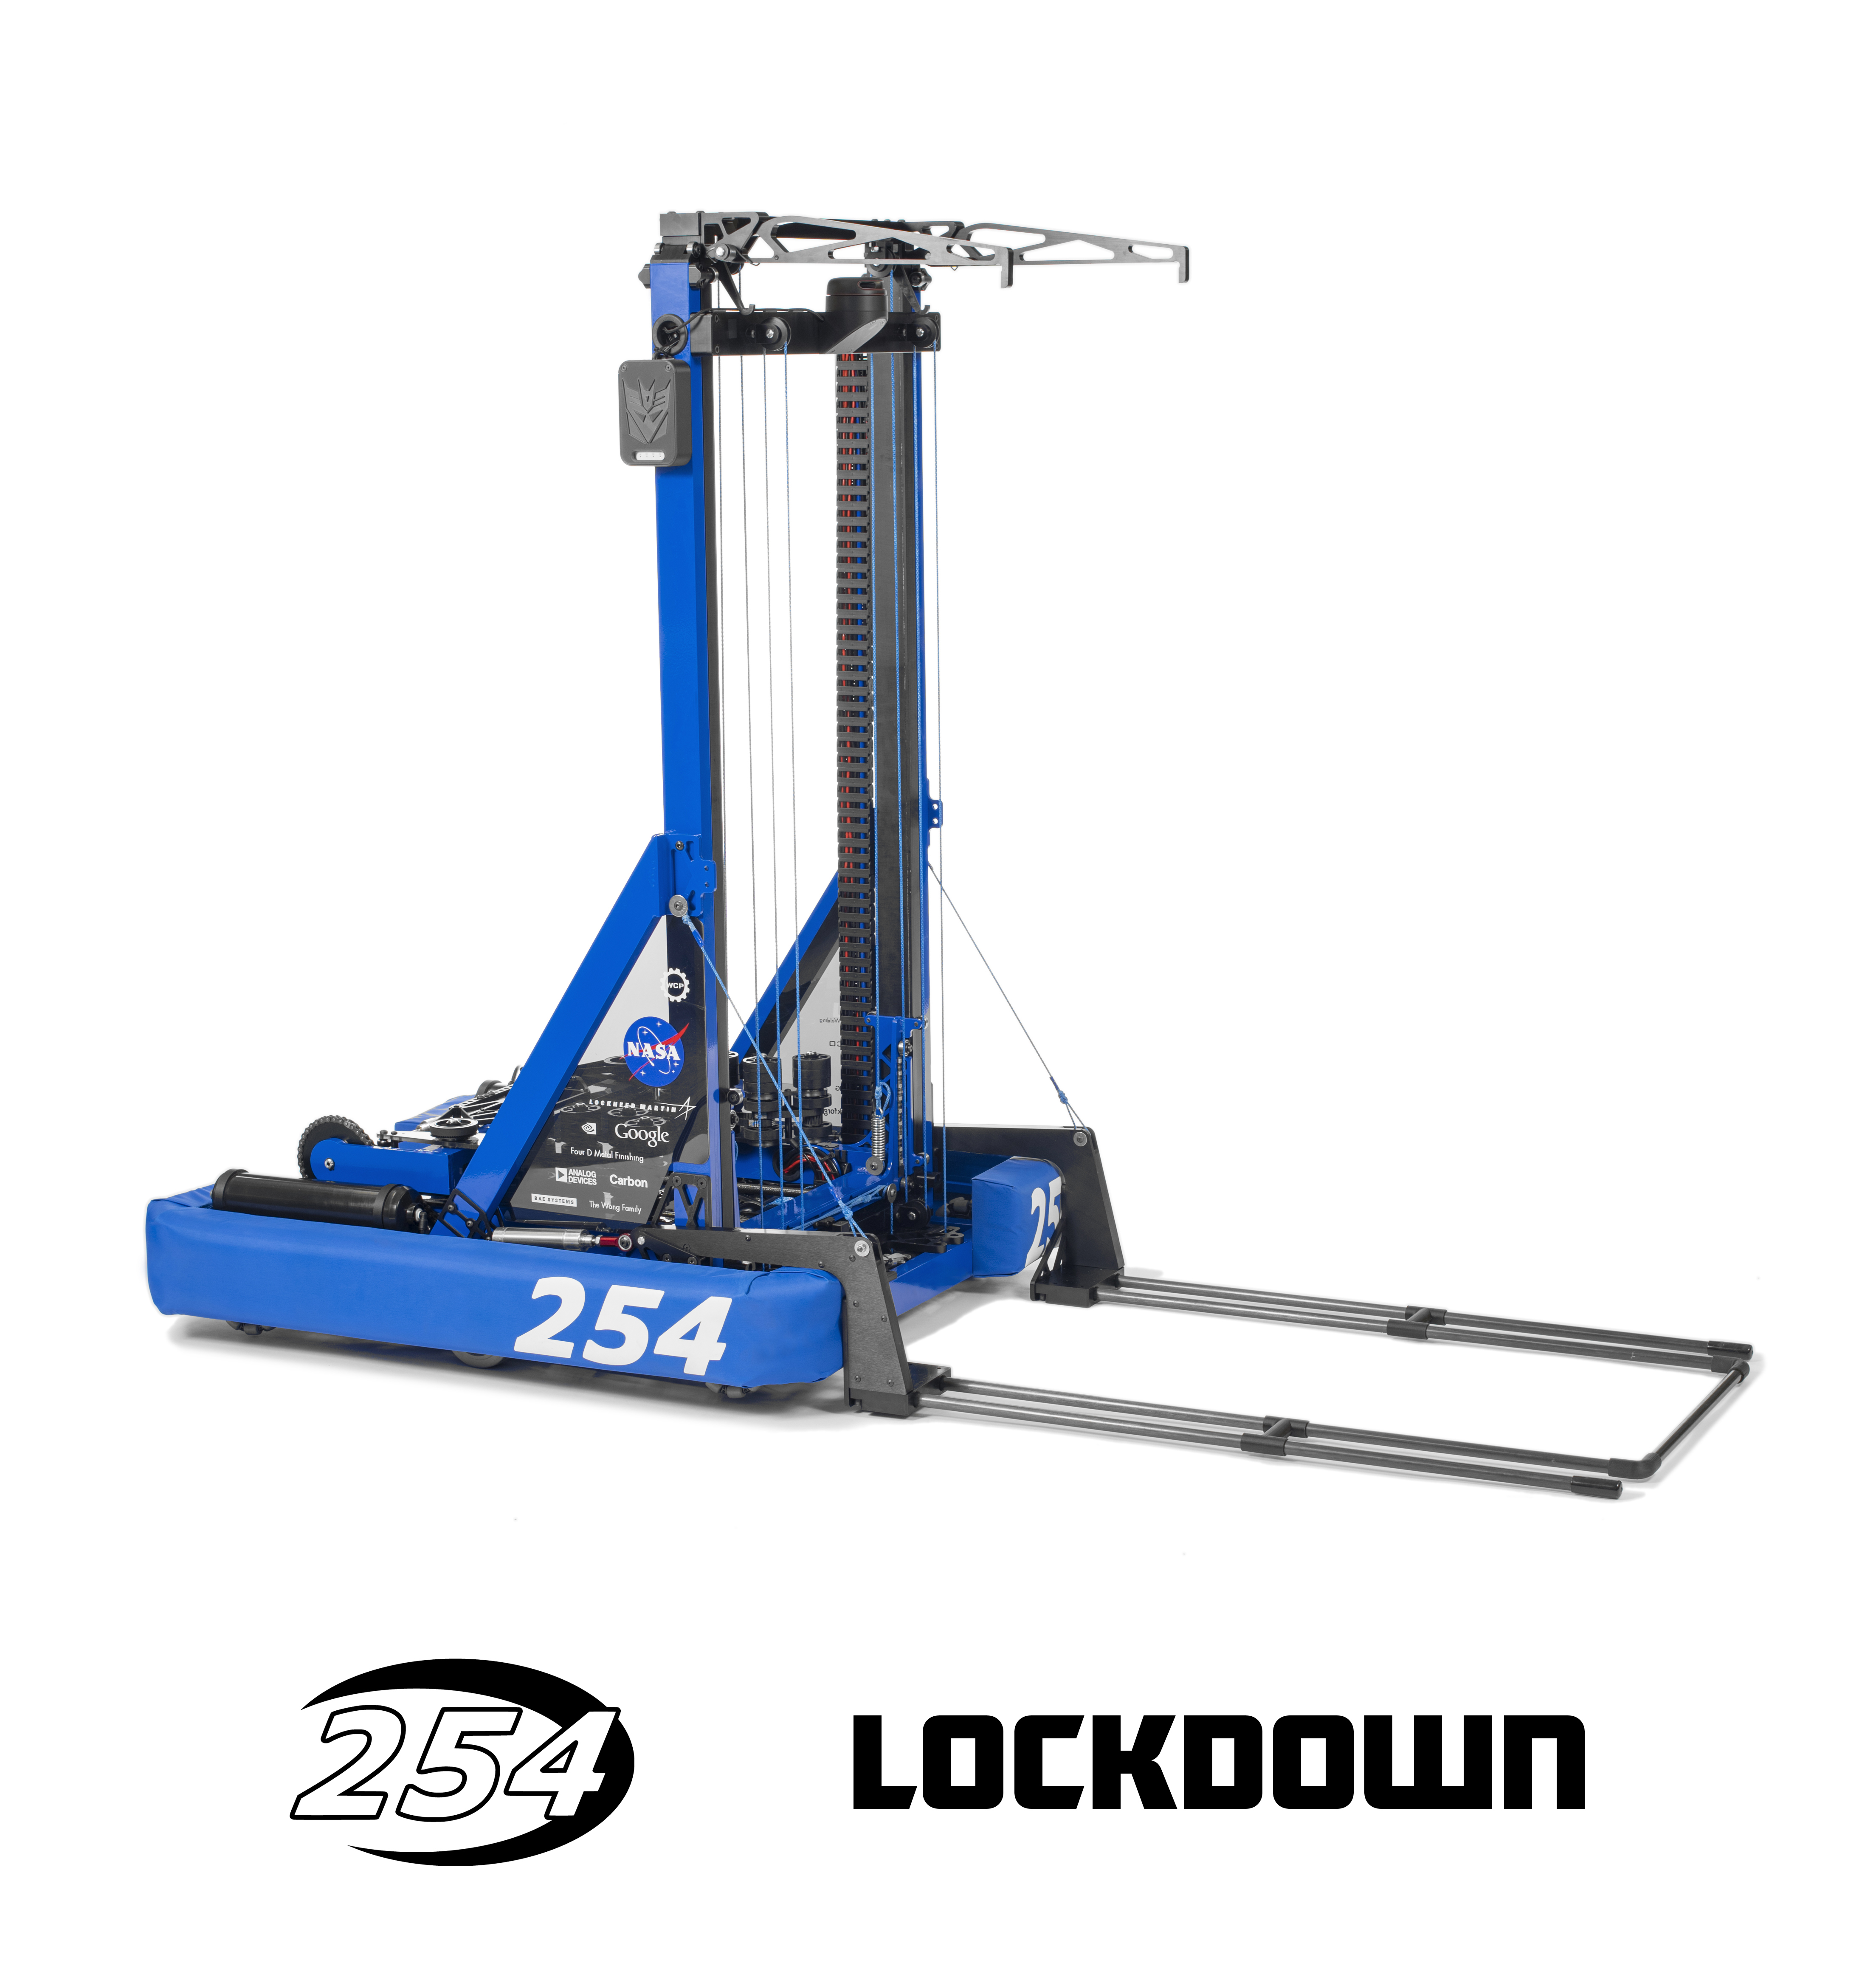 Lockdown will be competing at the Arizona North Regional, followed by the Silicon Valley Regional and the FIRST Championship in Houston.